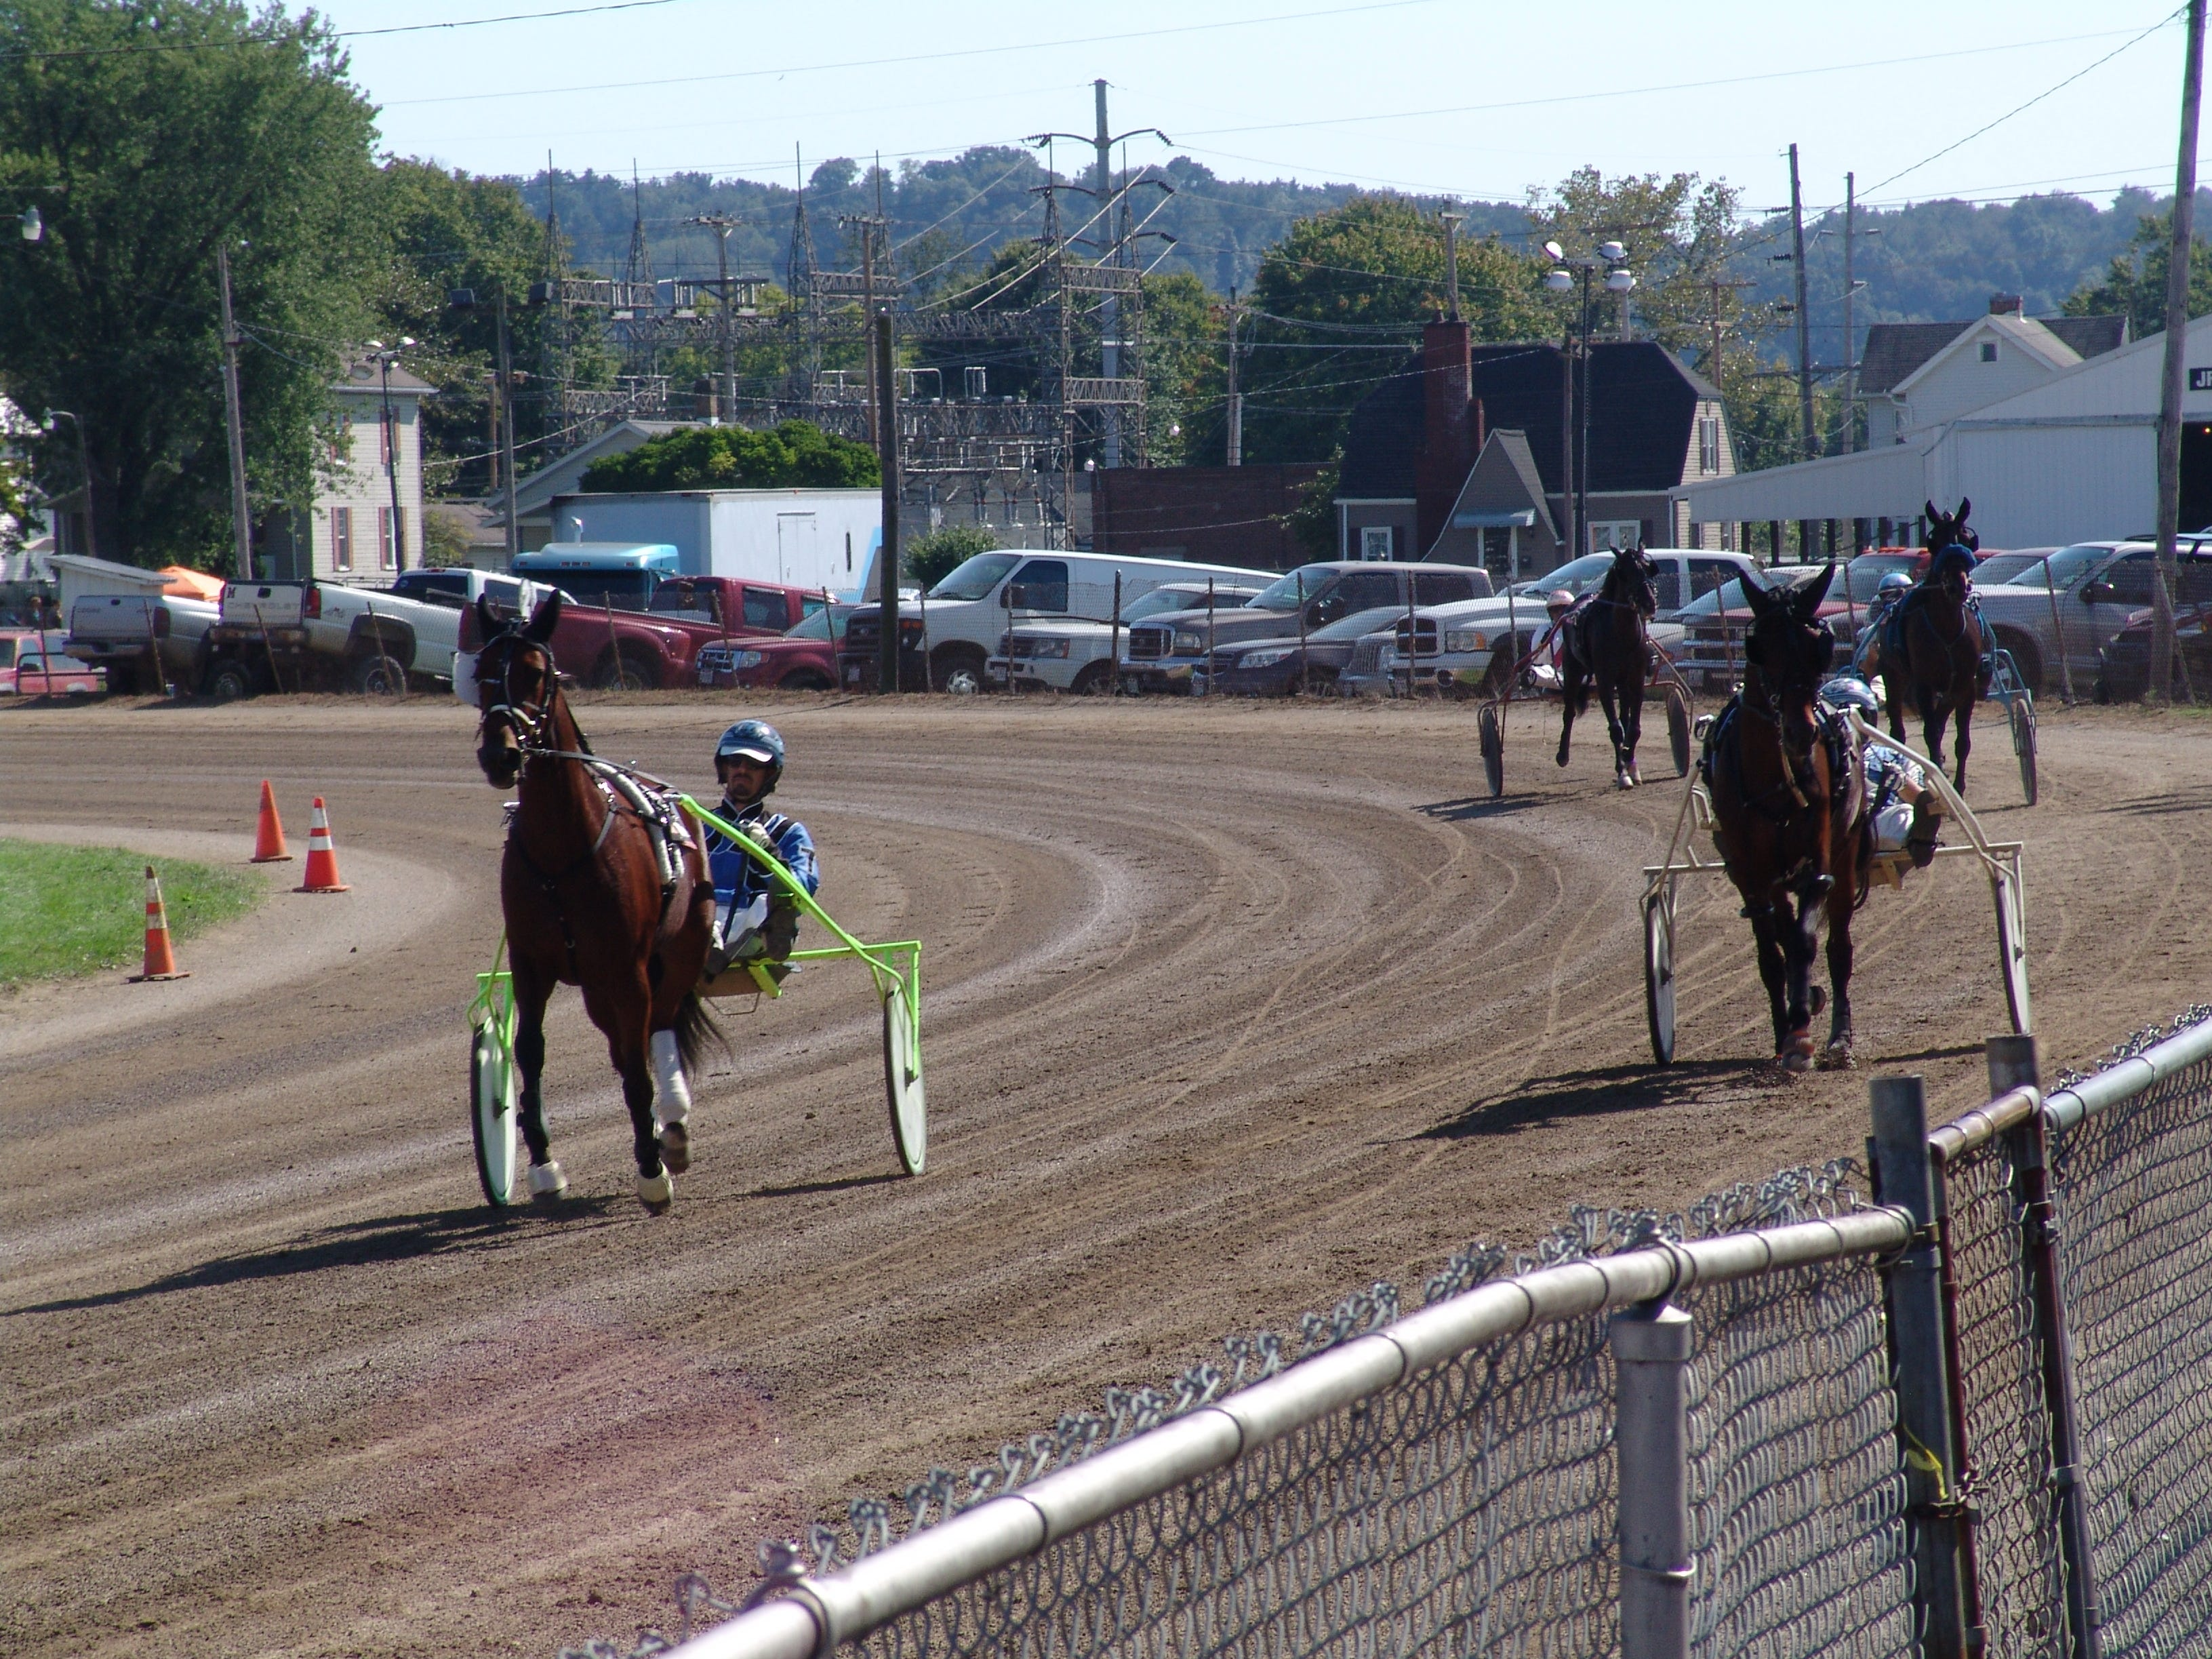 Harness racing Sunday at the grandstand at the Coshocton County Fair.